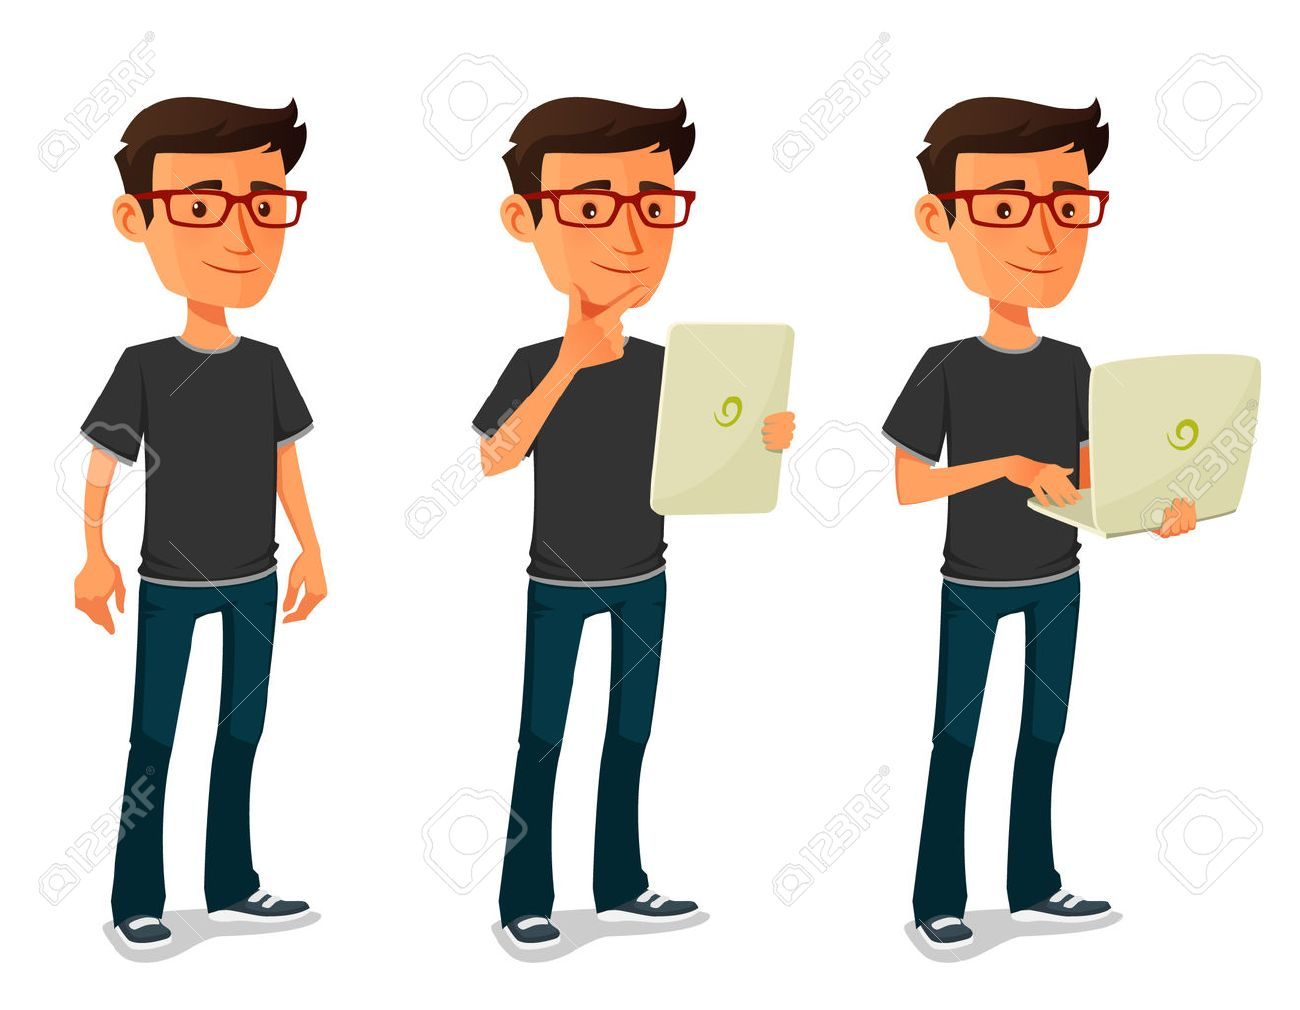 cartoon guy with tablet and notebook - 41708882